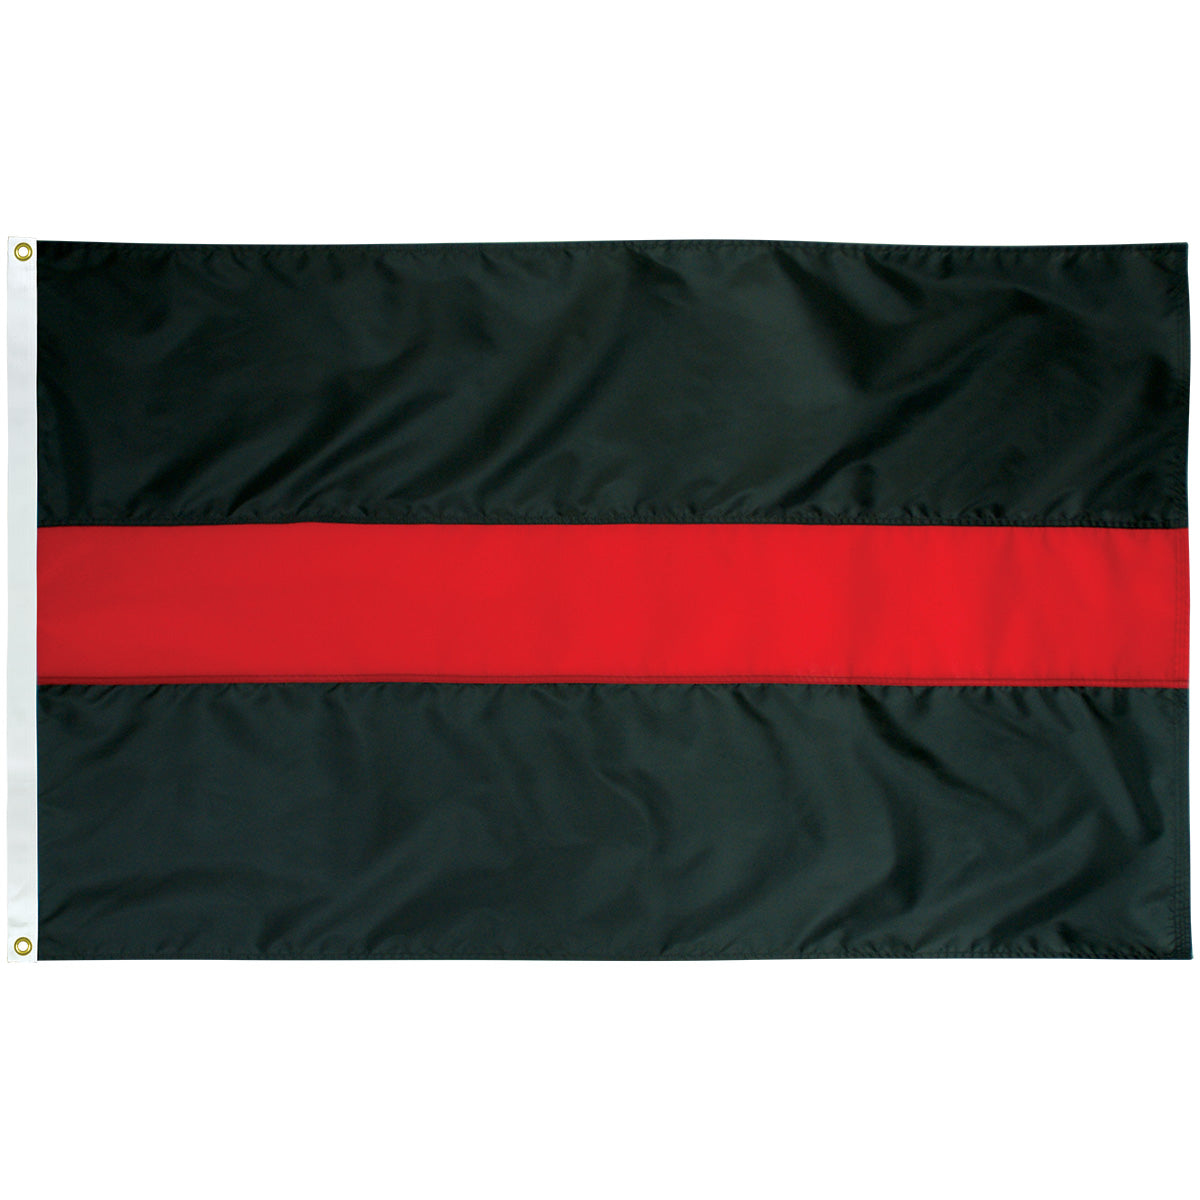 Load image into Gallery viewer, 4x6 Thin Red Line Outdoor Nylon Flag